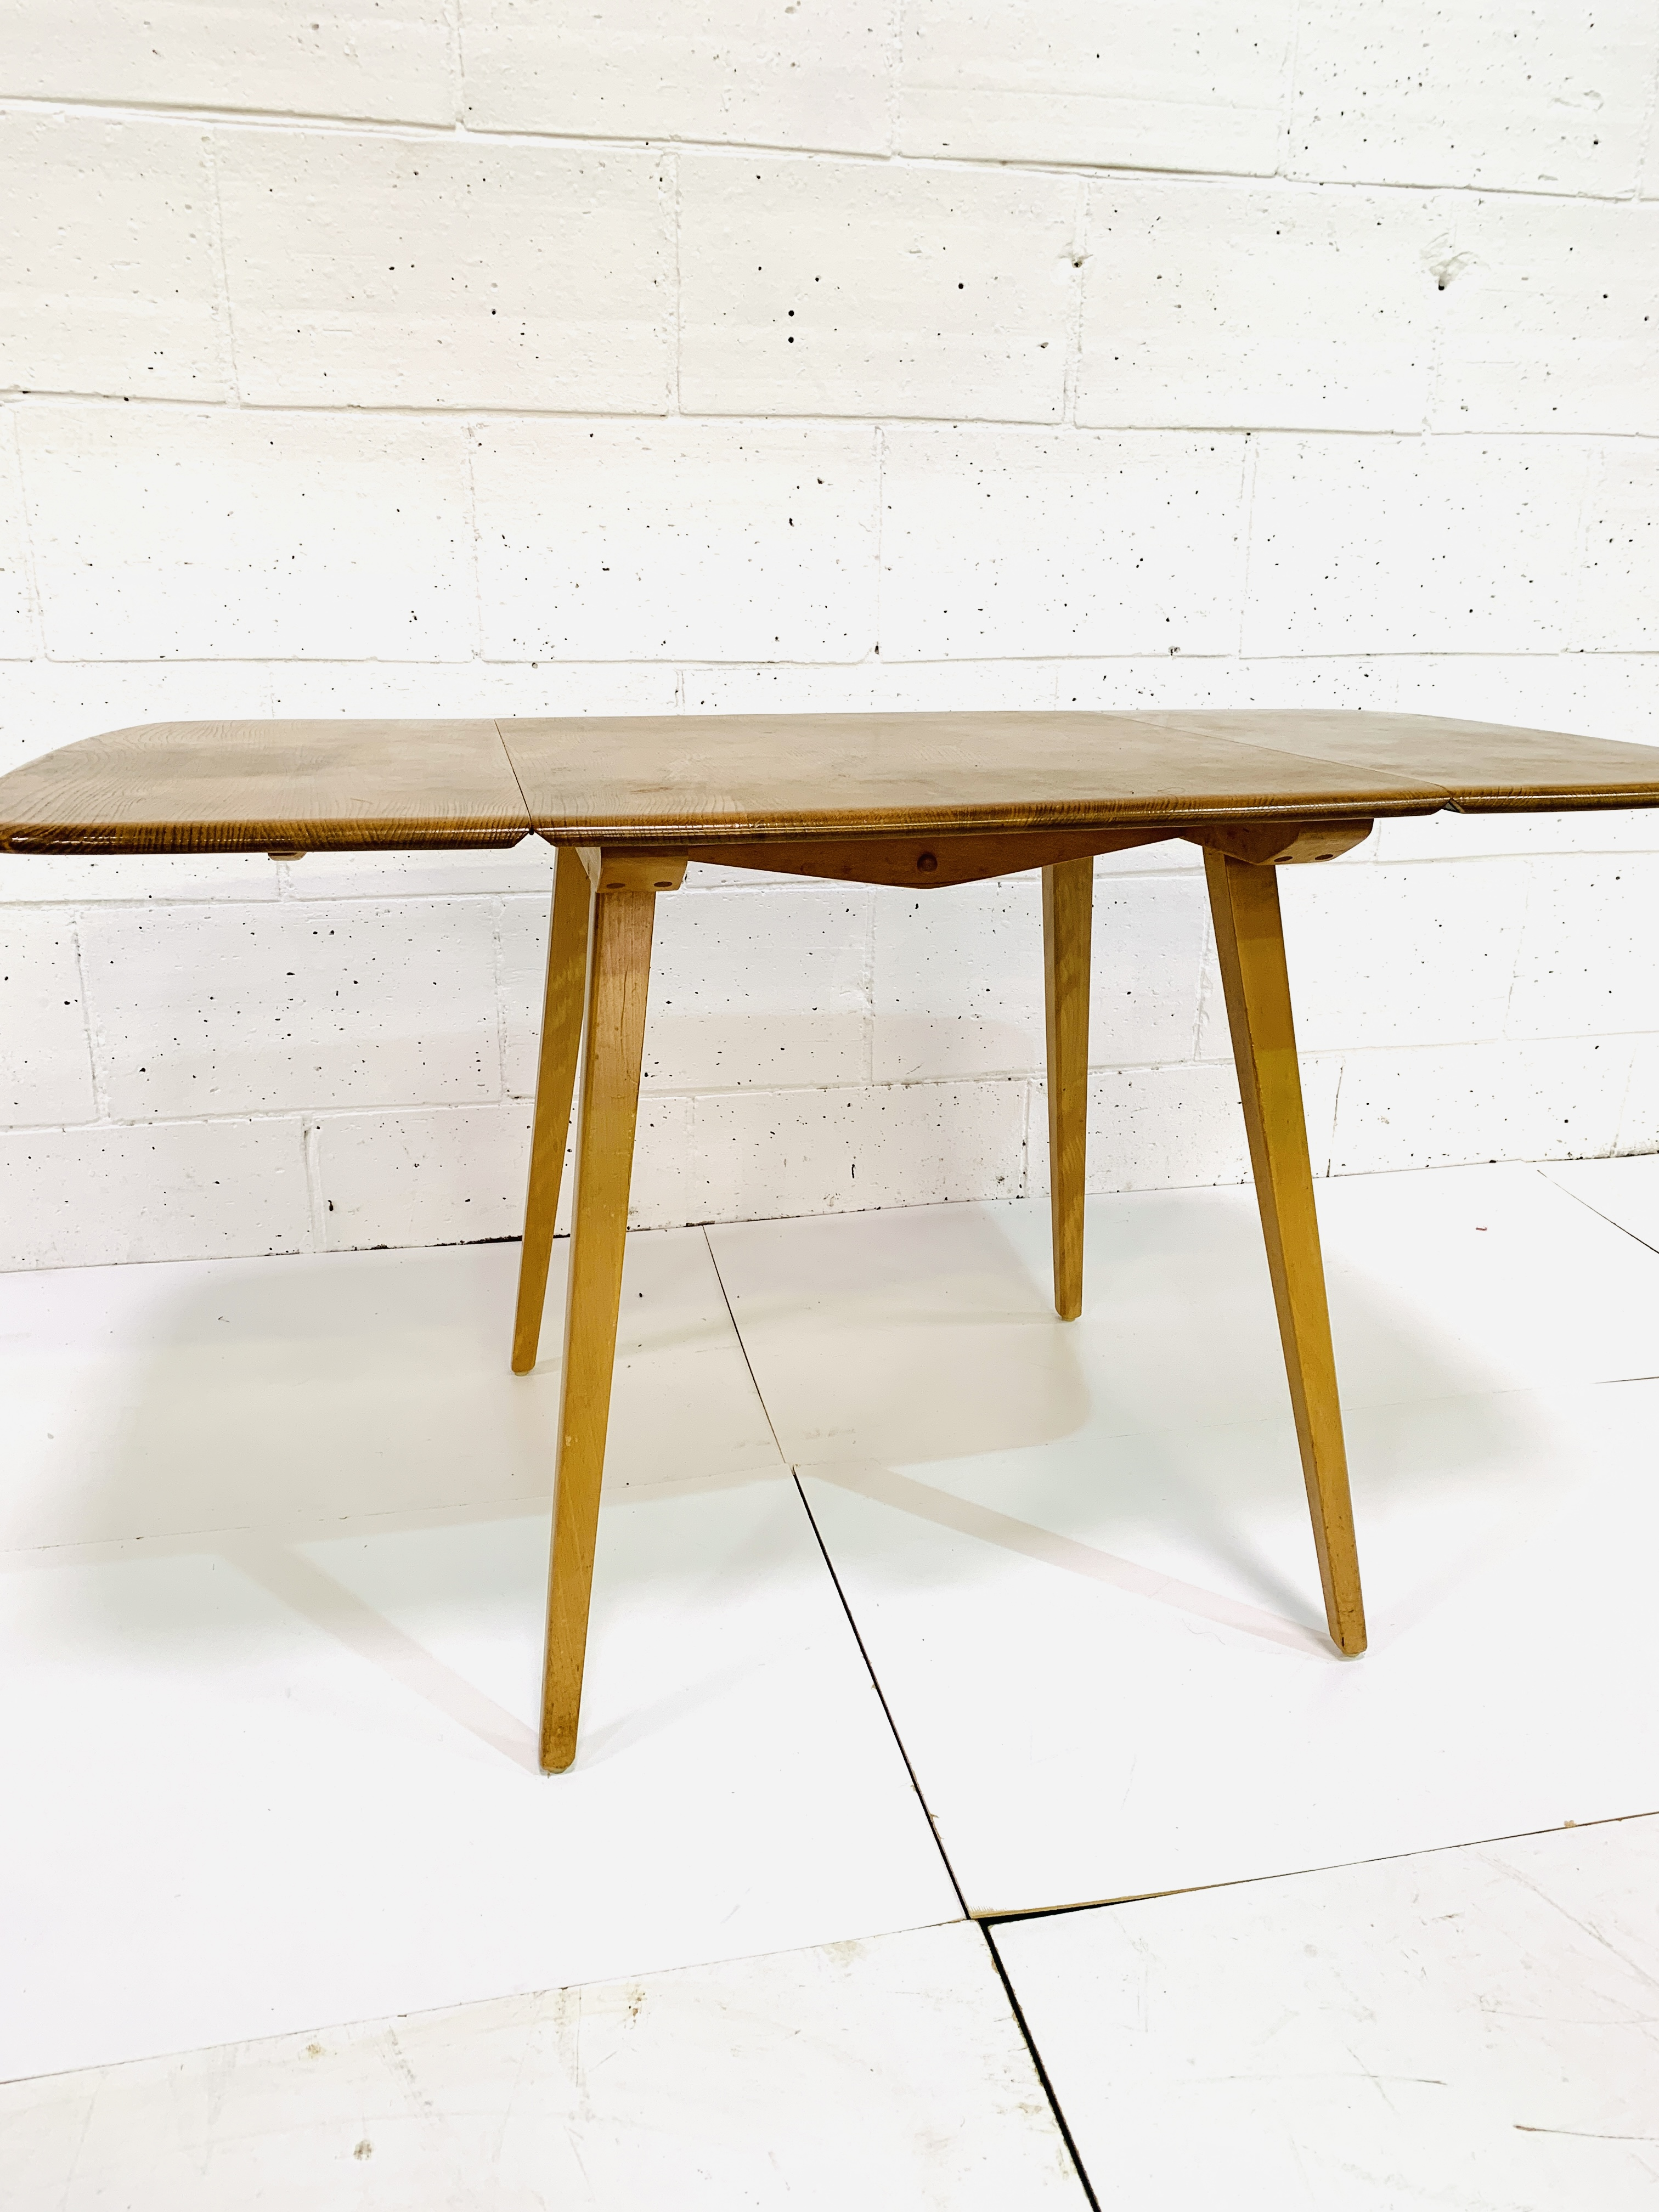 Ercol dropside table - Image 4 of 7